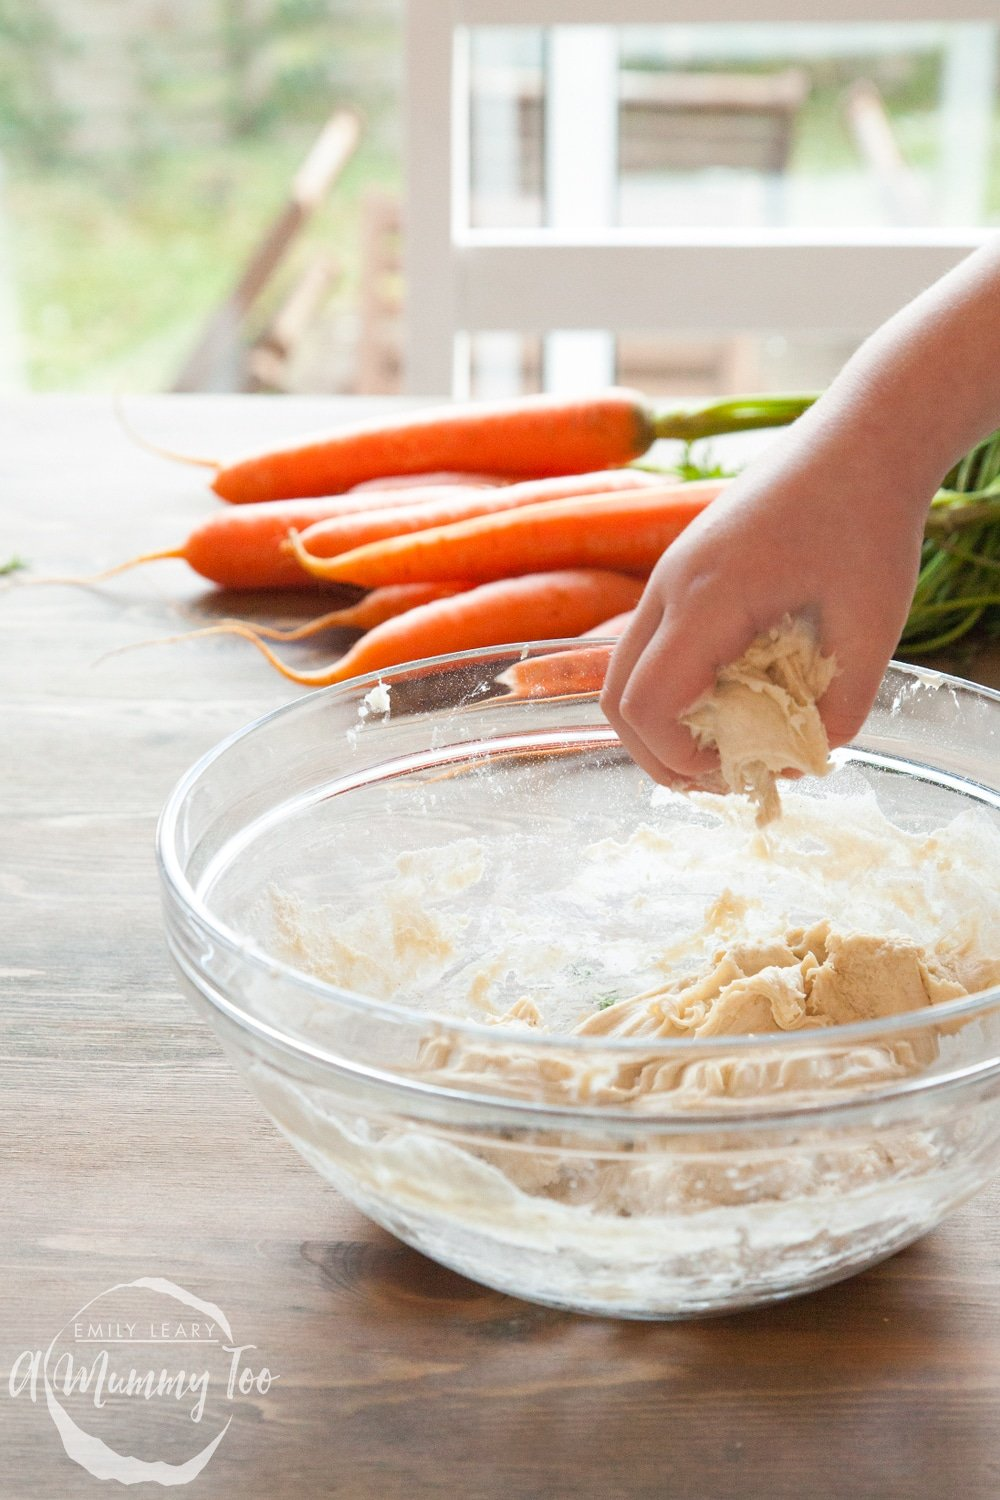 Children can mix the naan bread dough with their hands - it's lots of fun!